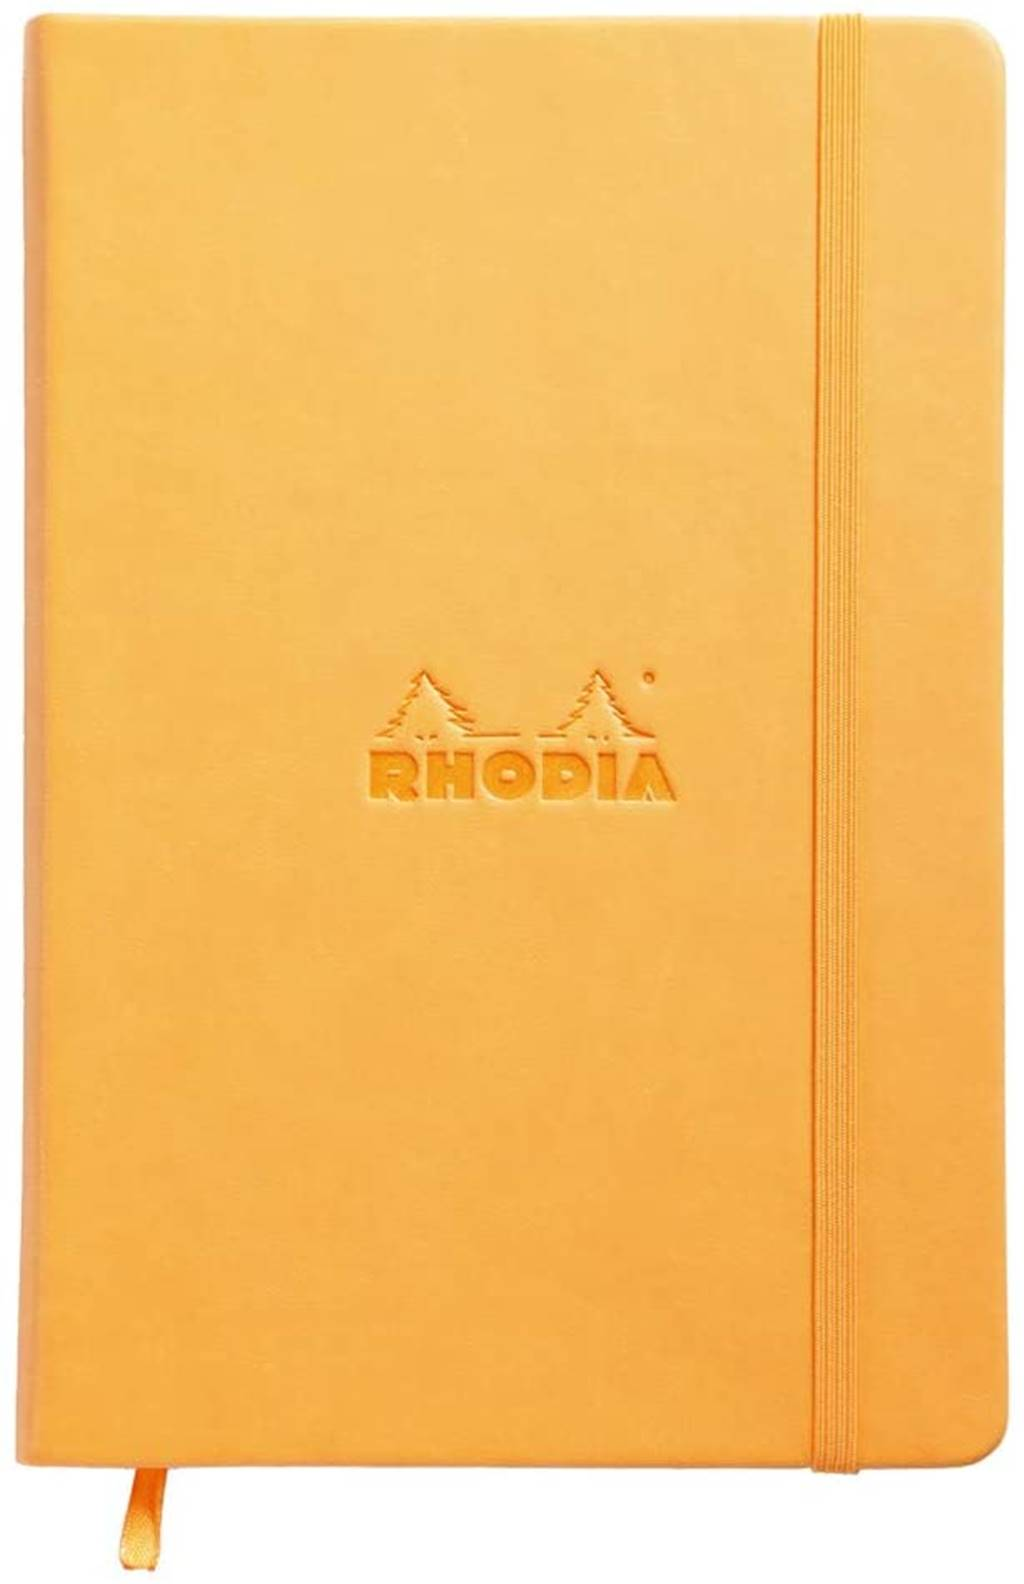 Rhodia web notebook Orange Italian imitation cover dot grid